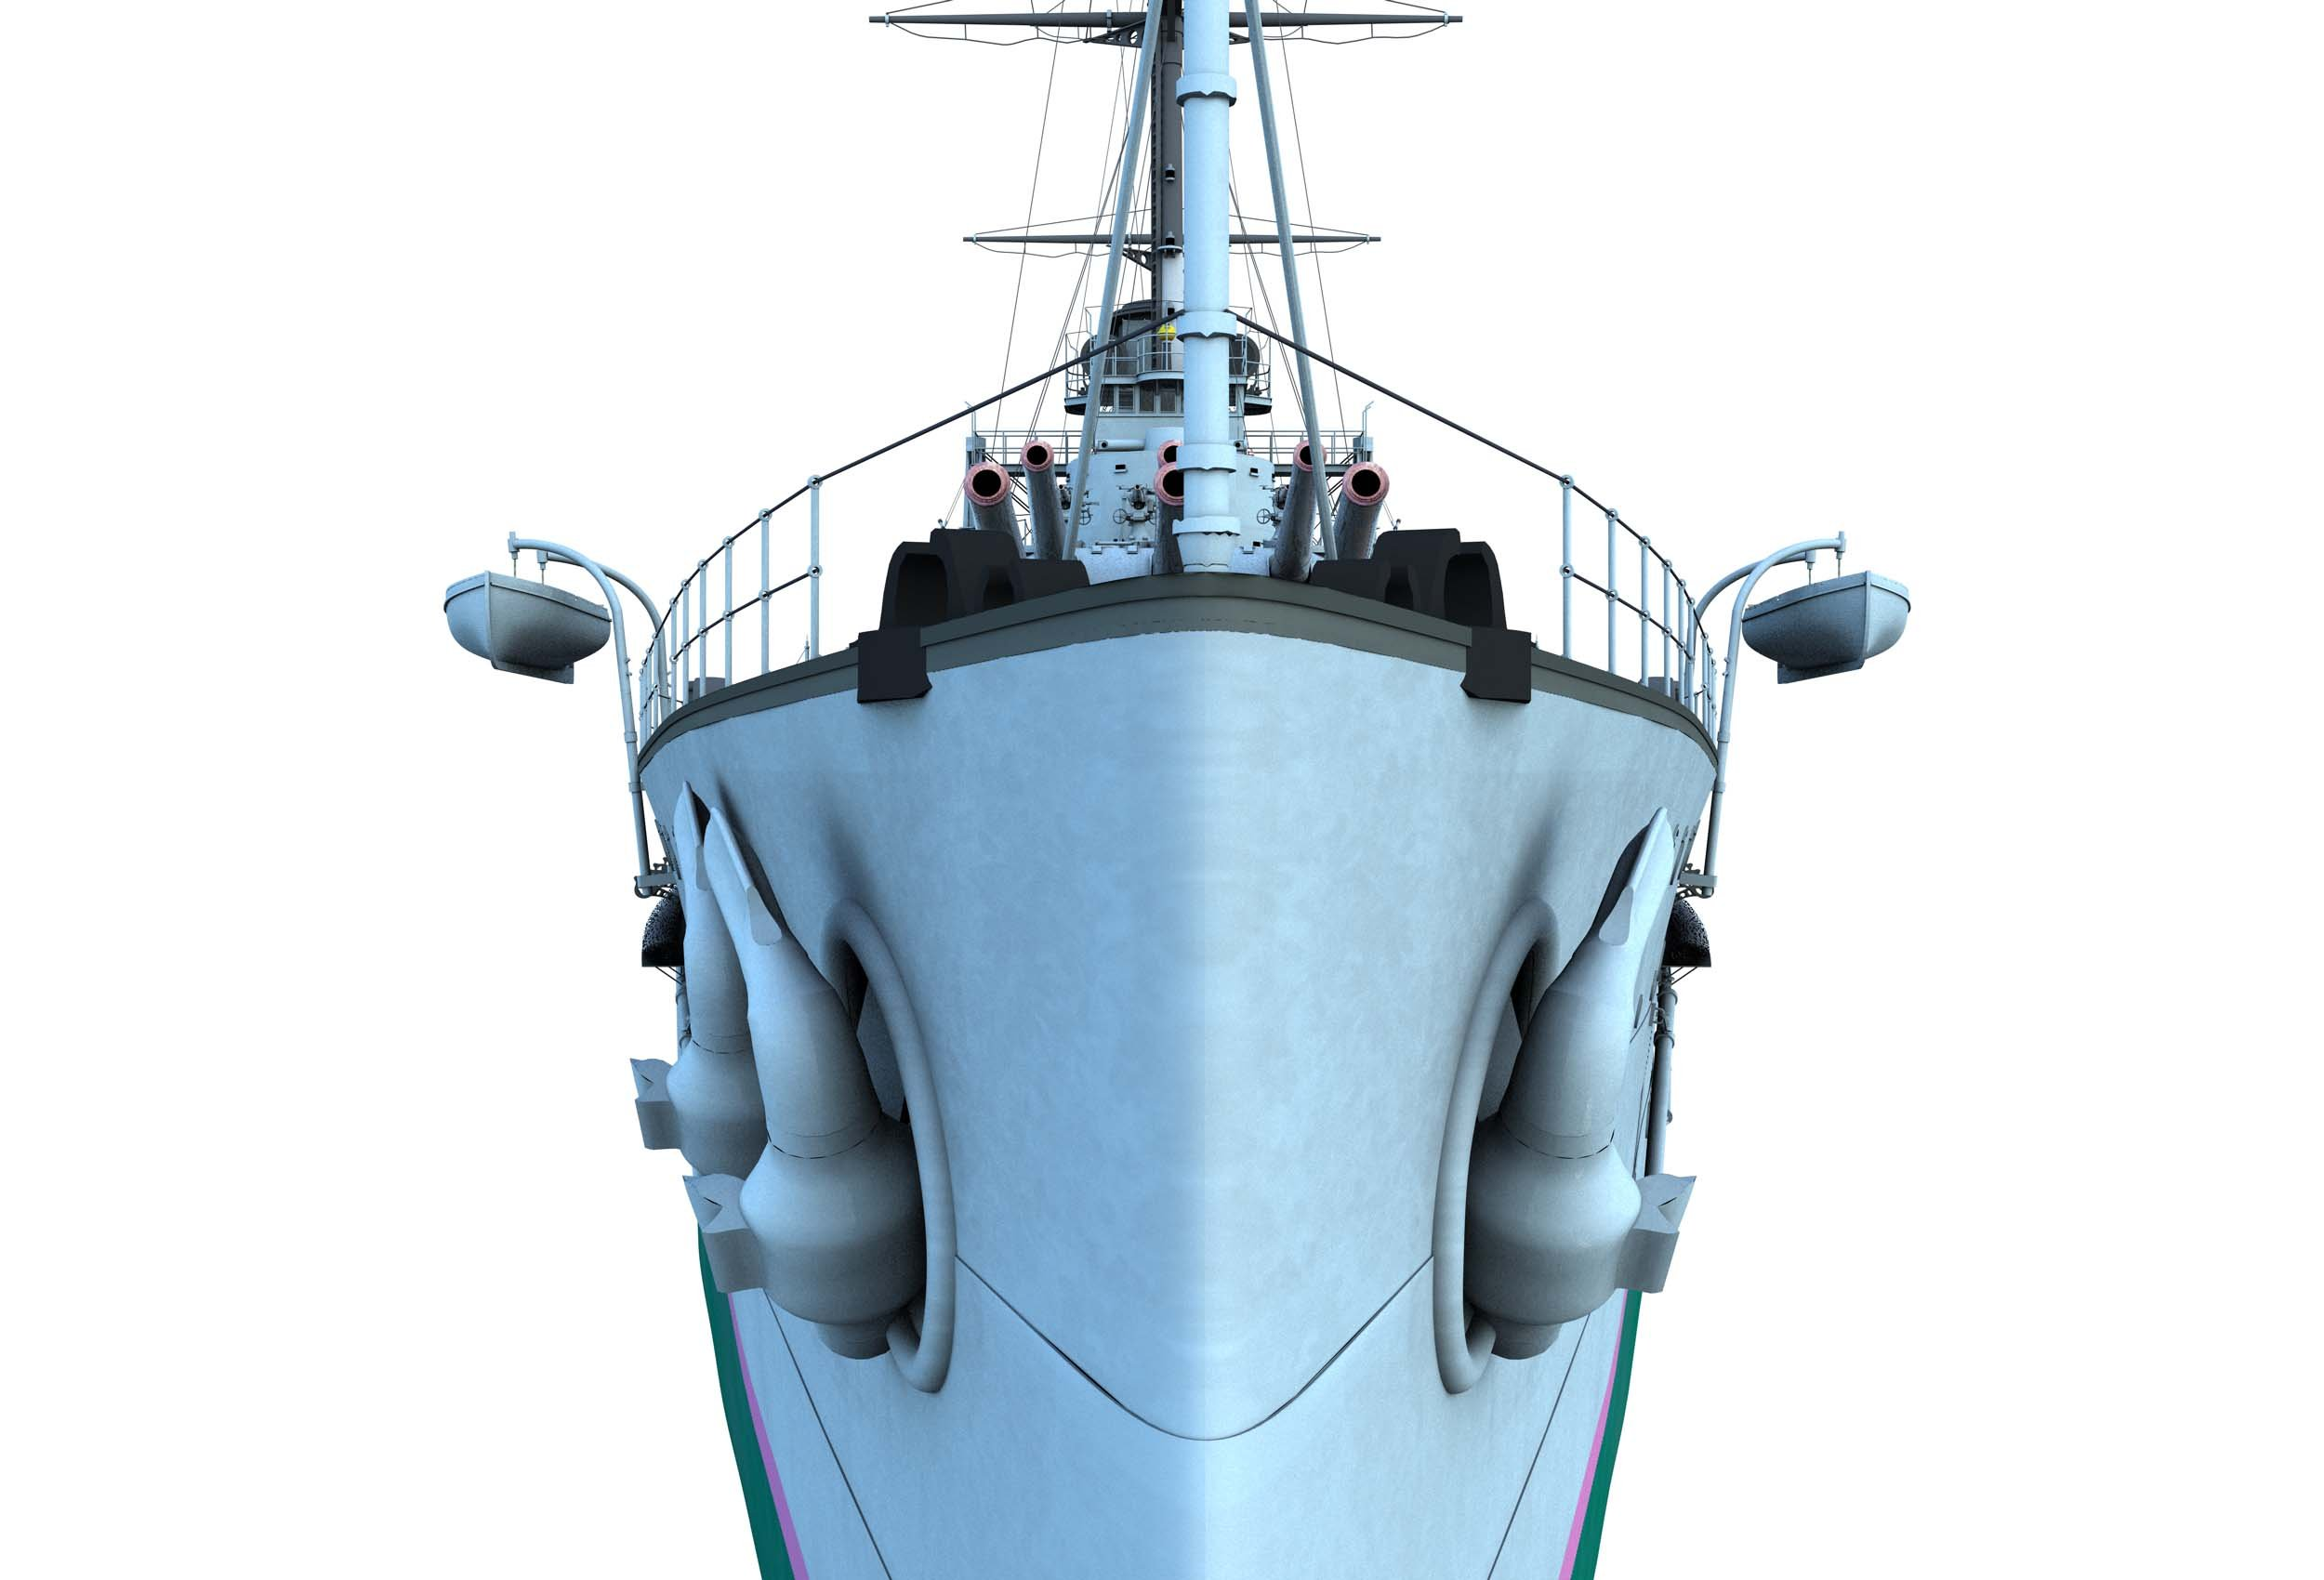 https://0901.nccdn.net/4_2/000/000/060/85f/CK120-Partial-Ship-Bow-Straight-on-Anchors.jpg